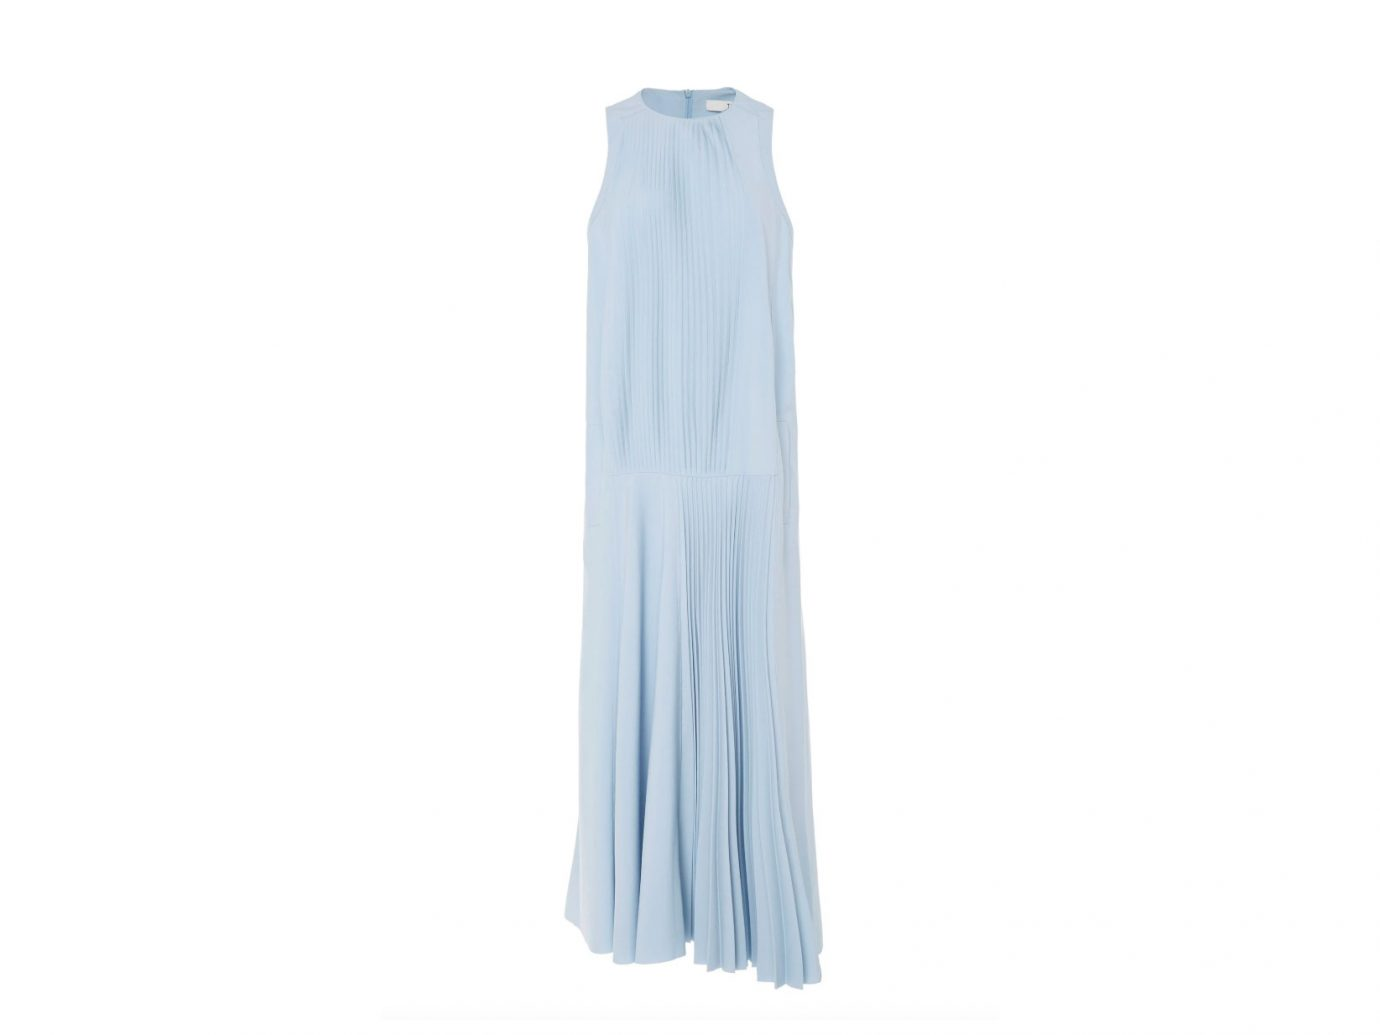 powder blue Tibi maxi dress